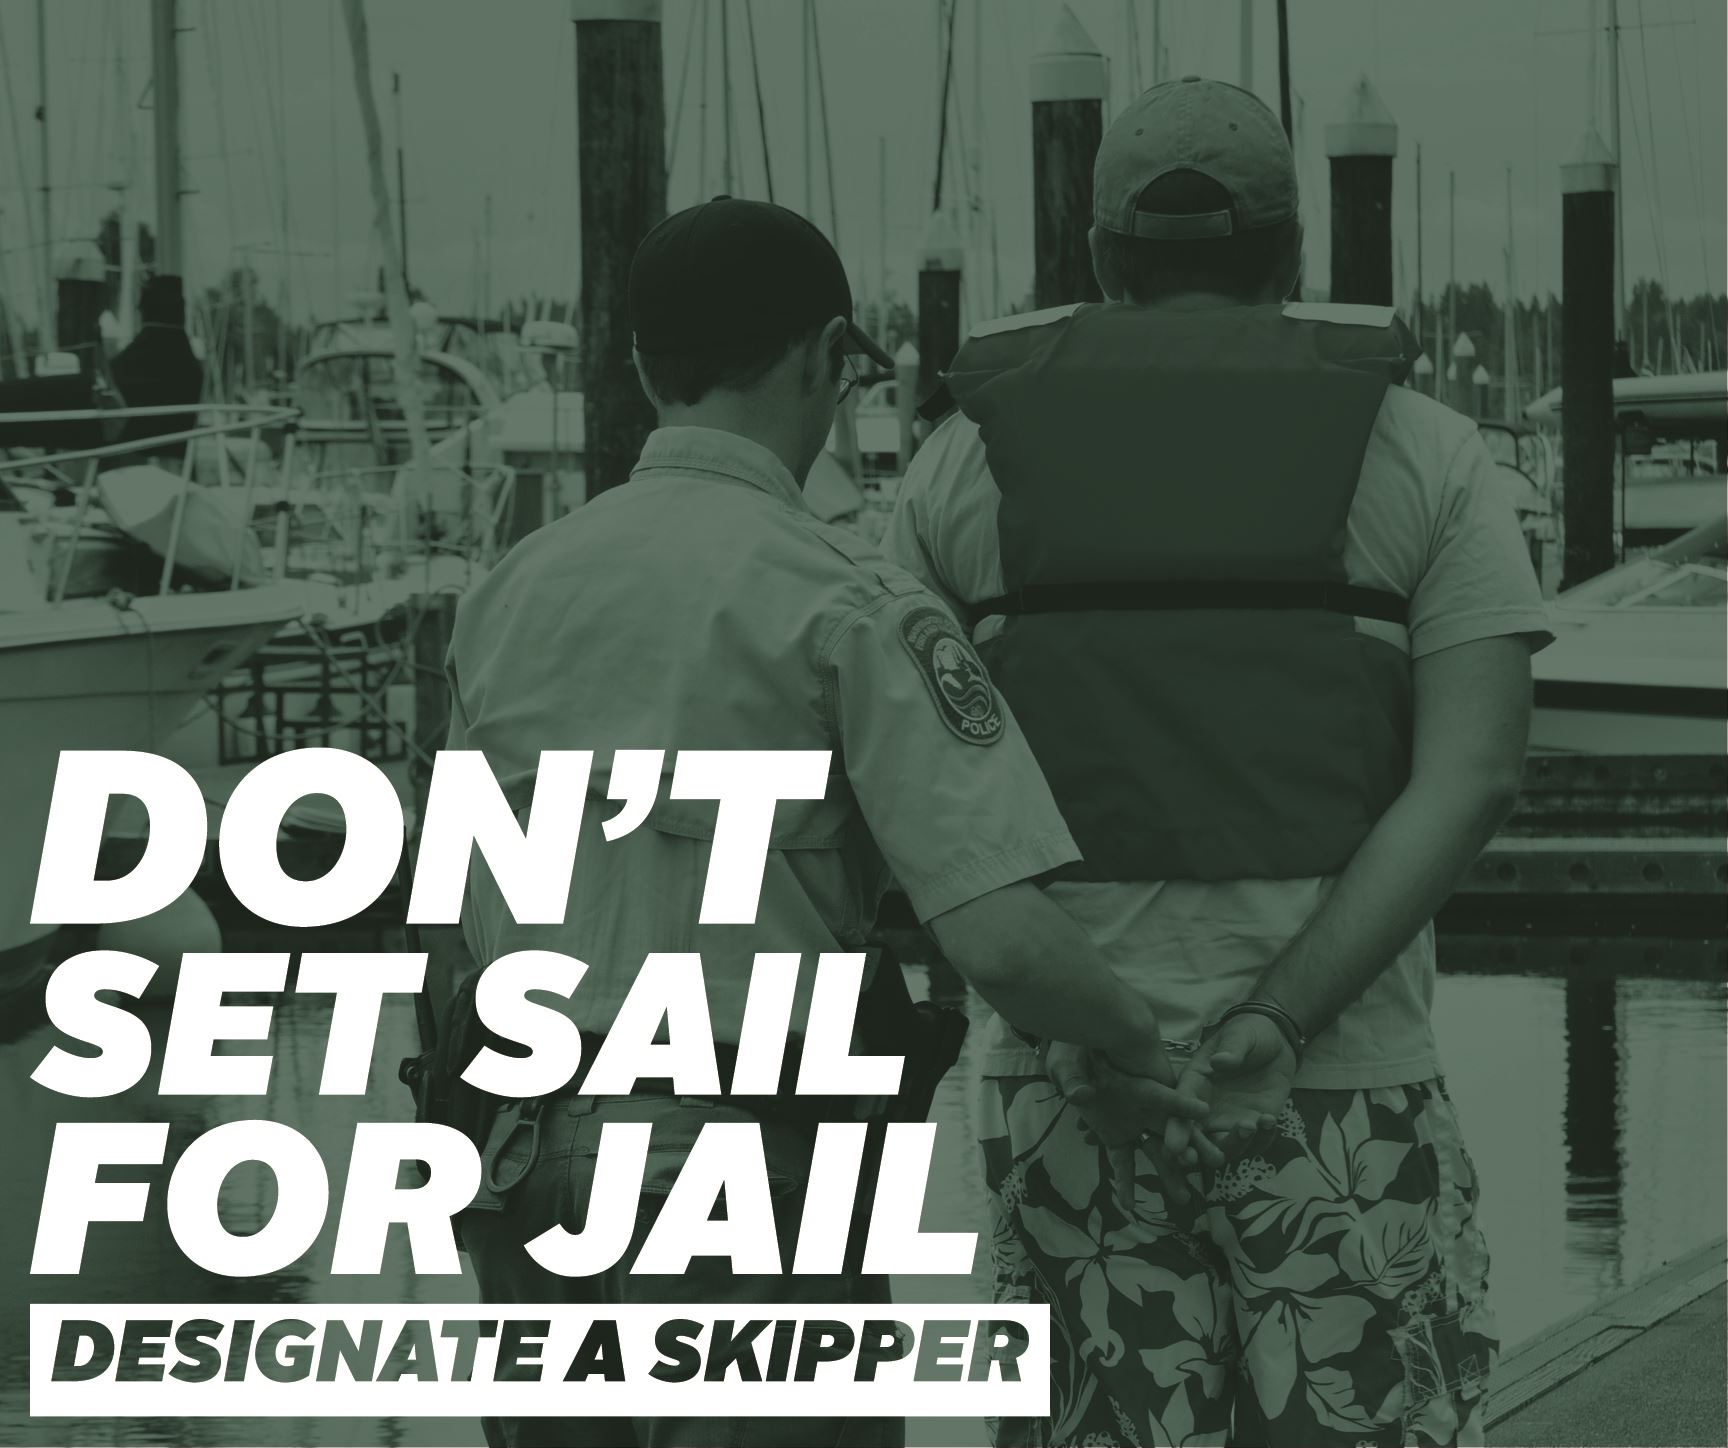 Dont set sail for jail